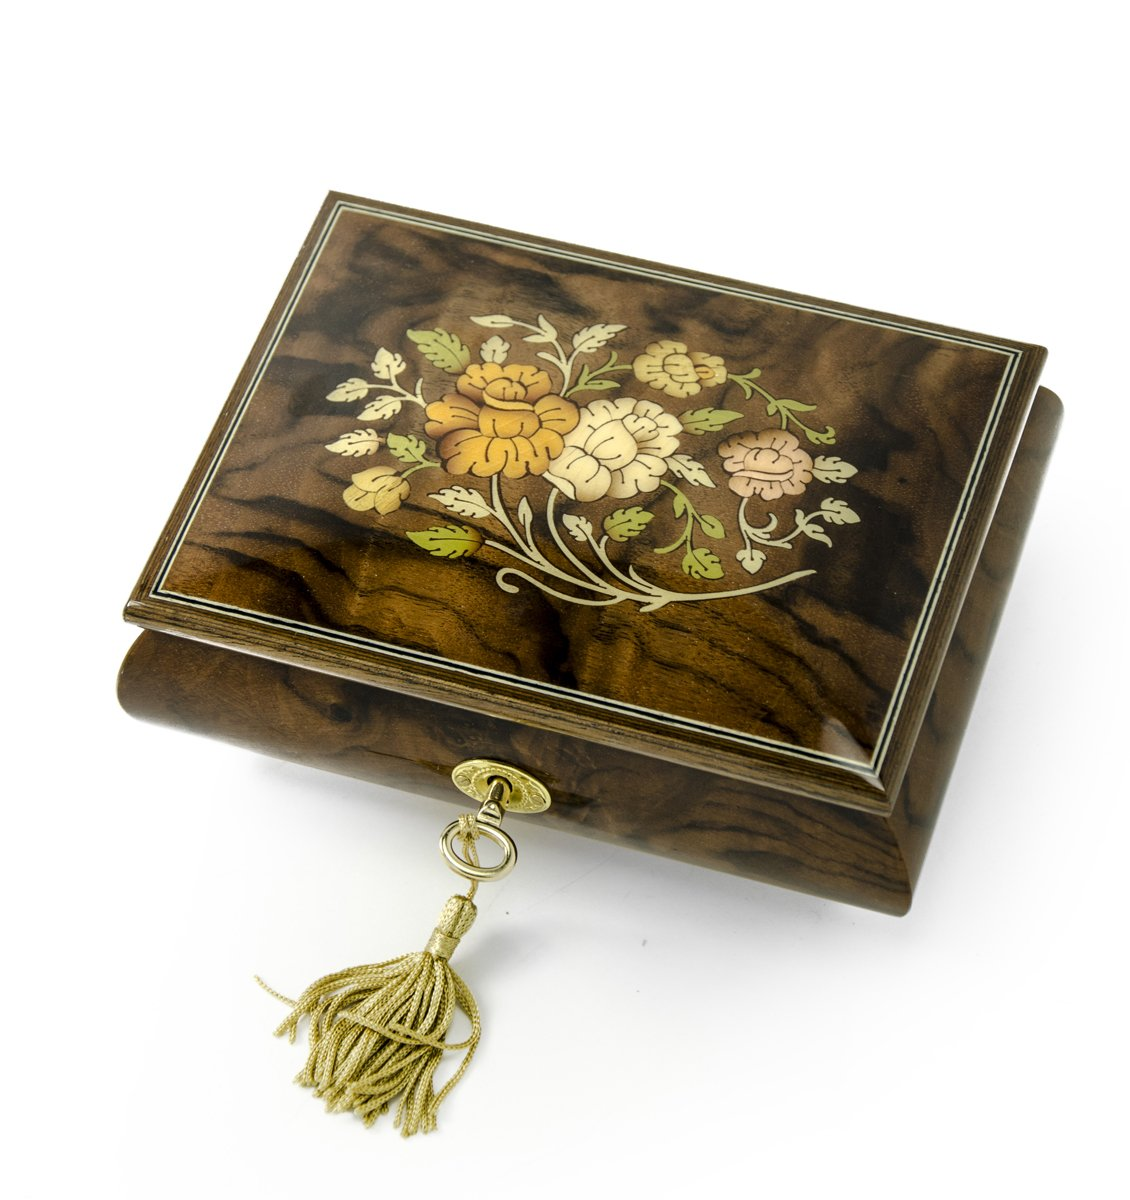 Handcrafted 18 Note Italian Walnut Floral Inlay Musical Jewelry Box with Lock and Key - School Oays